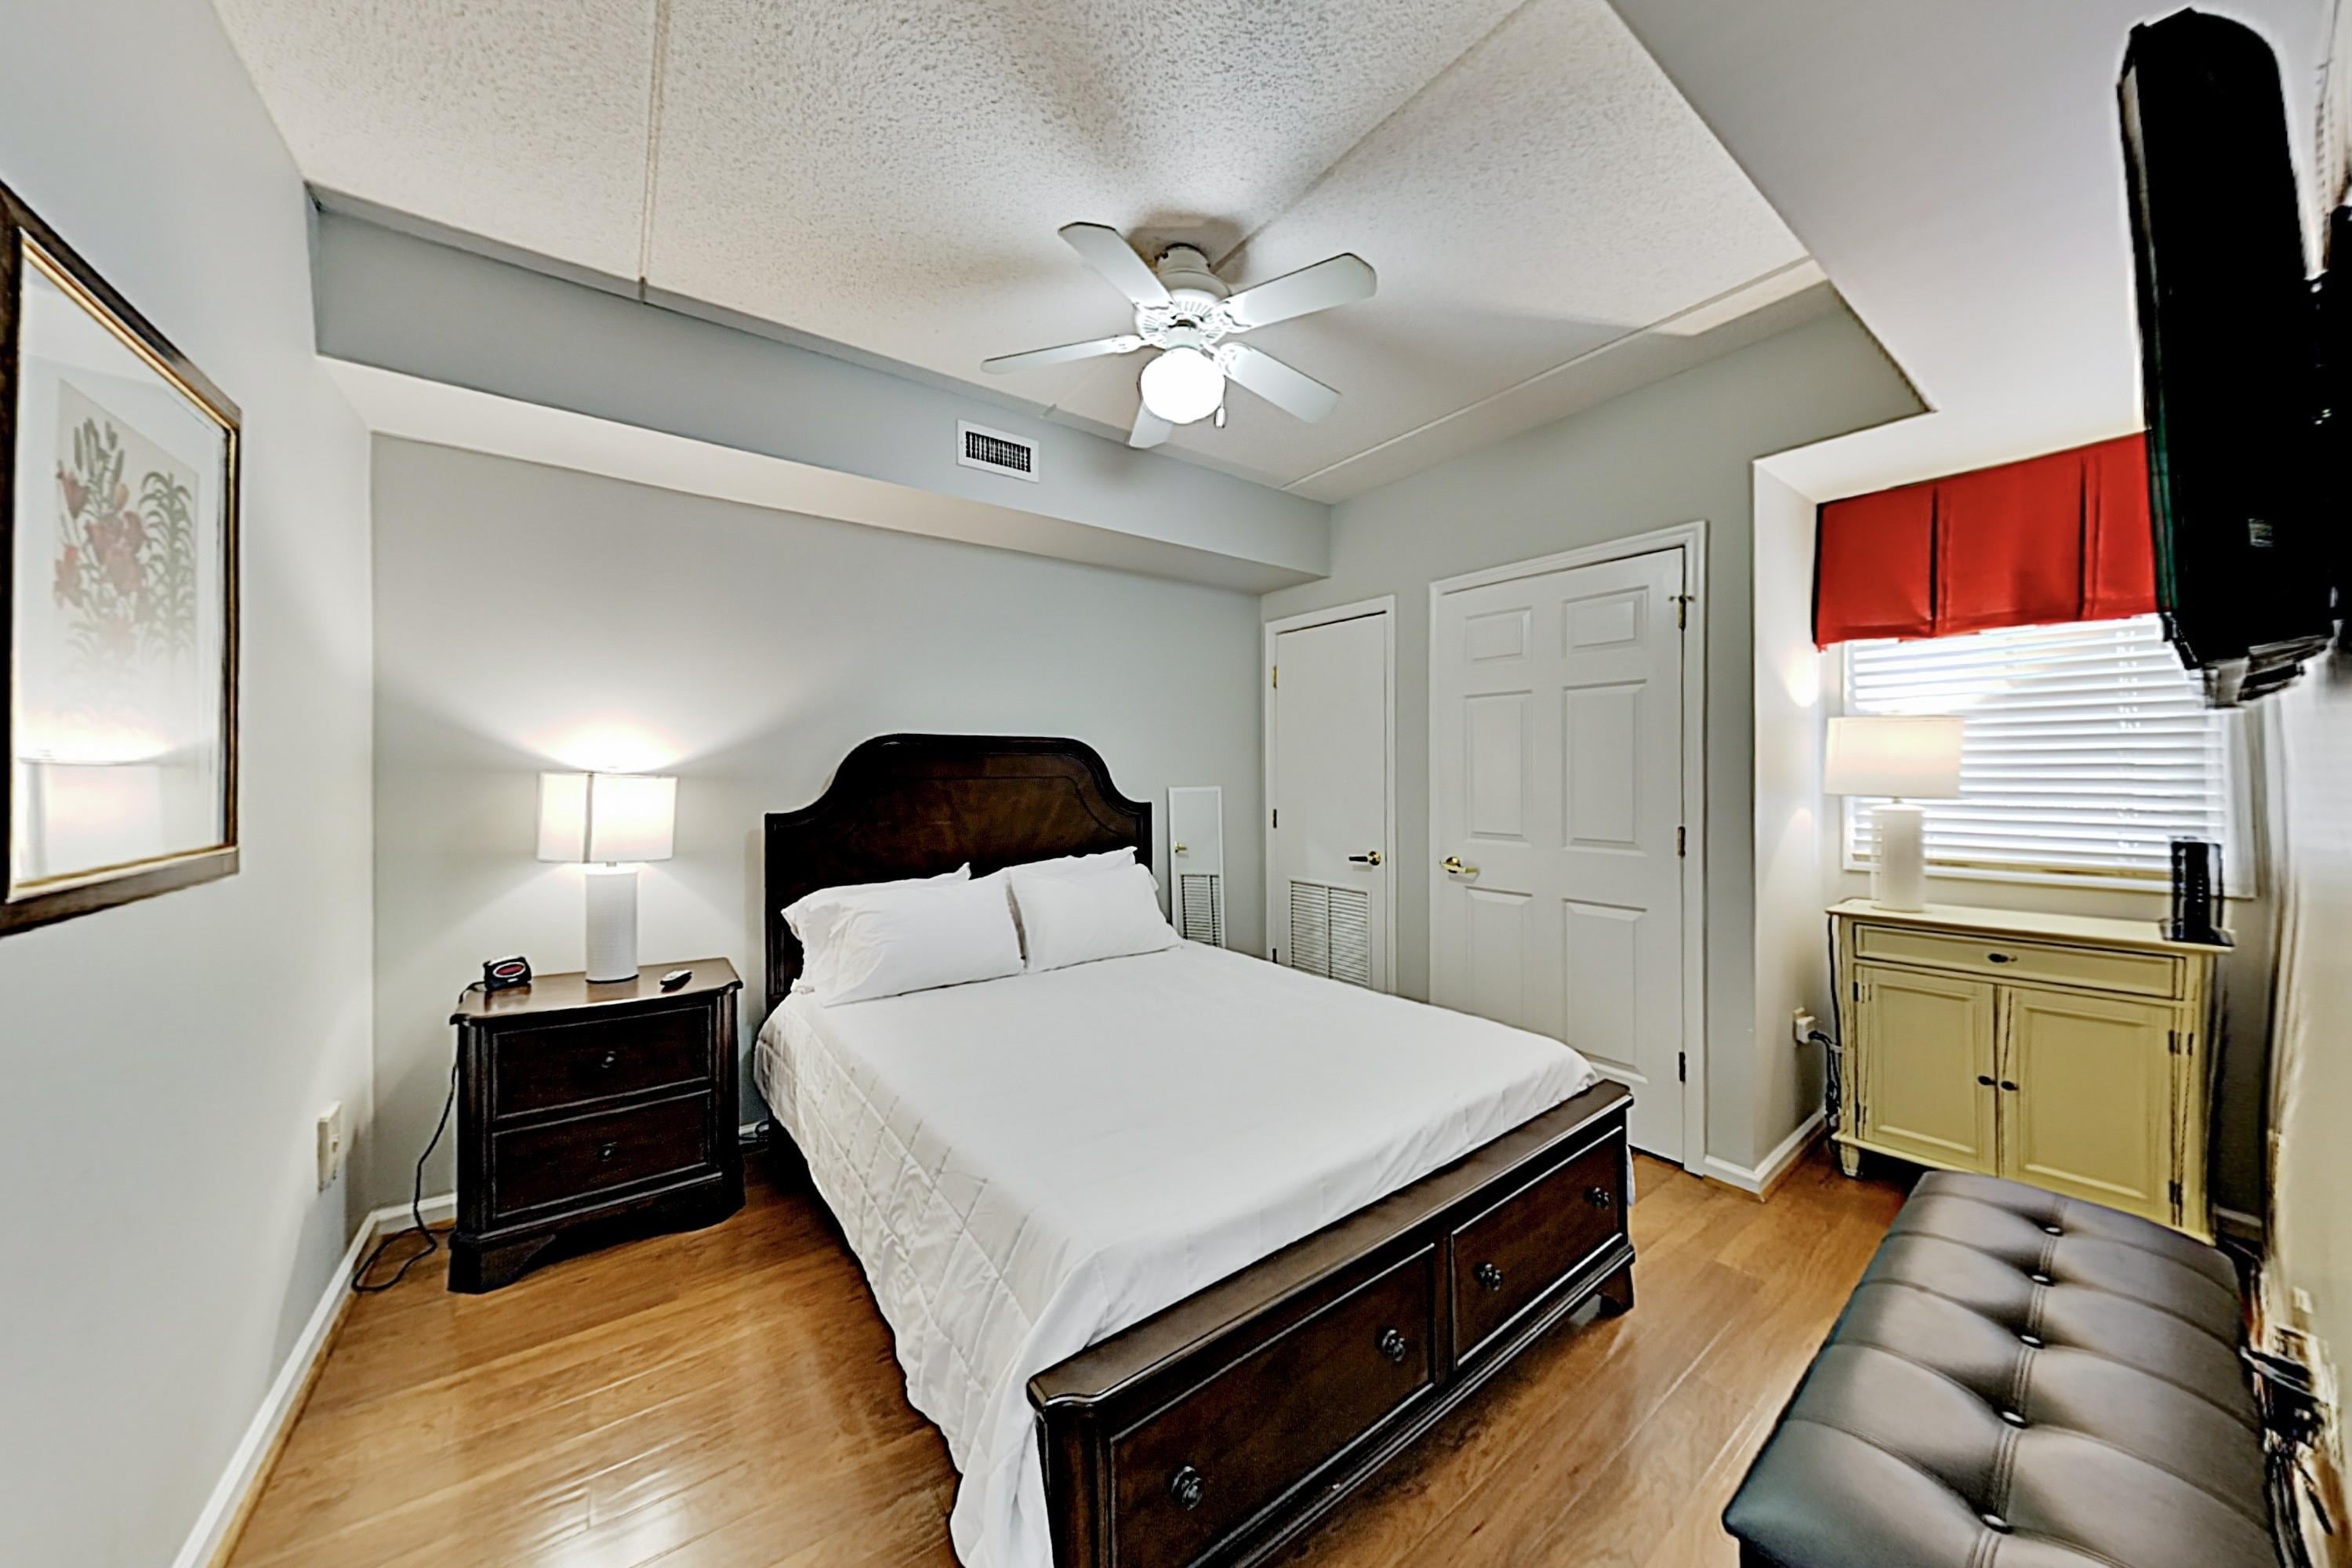 Sleep soundly in the bedroom, furnished with a comfortable queen bed.